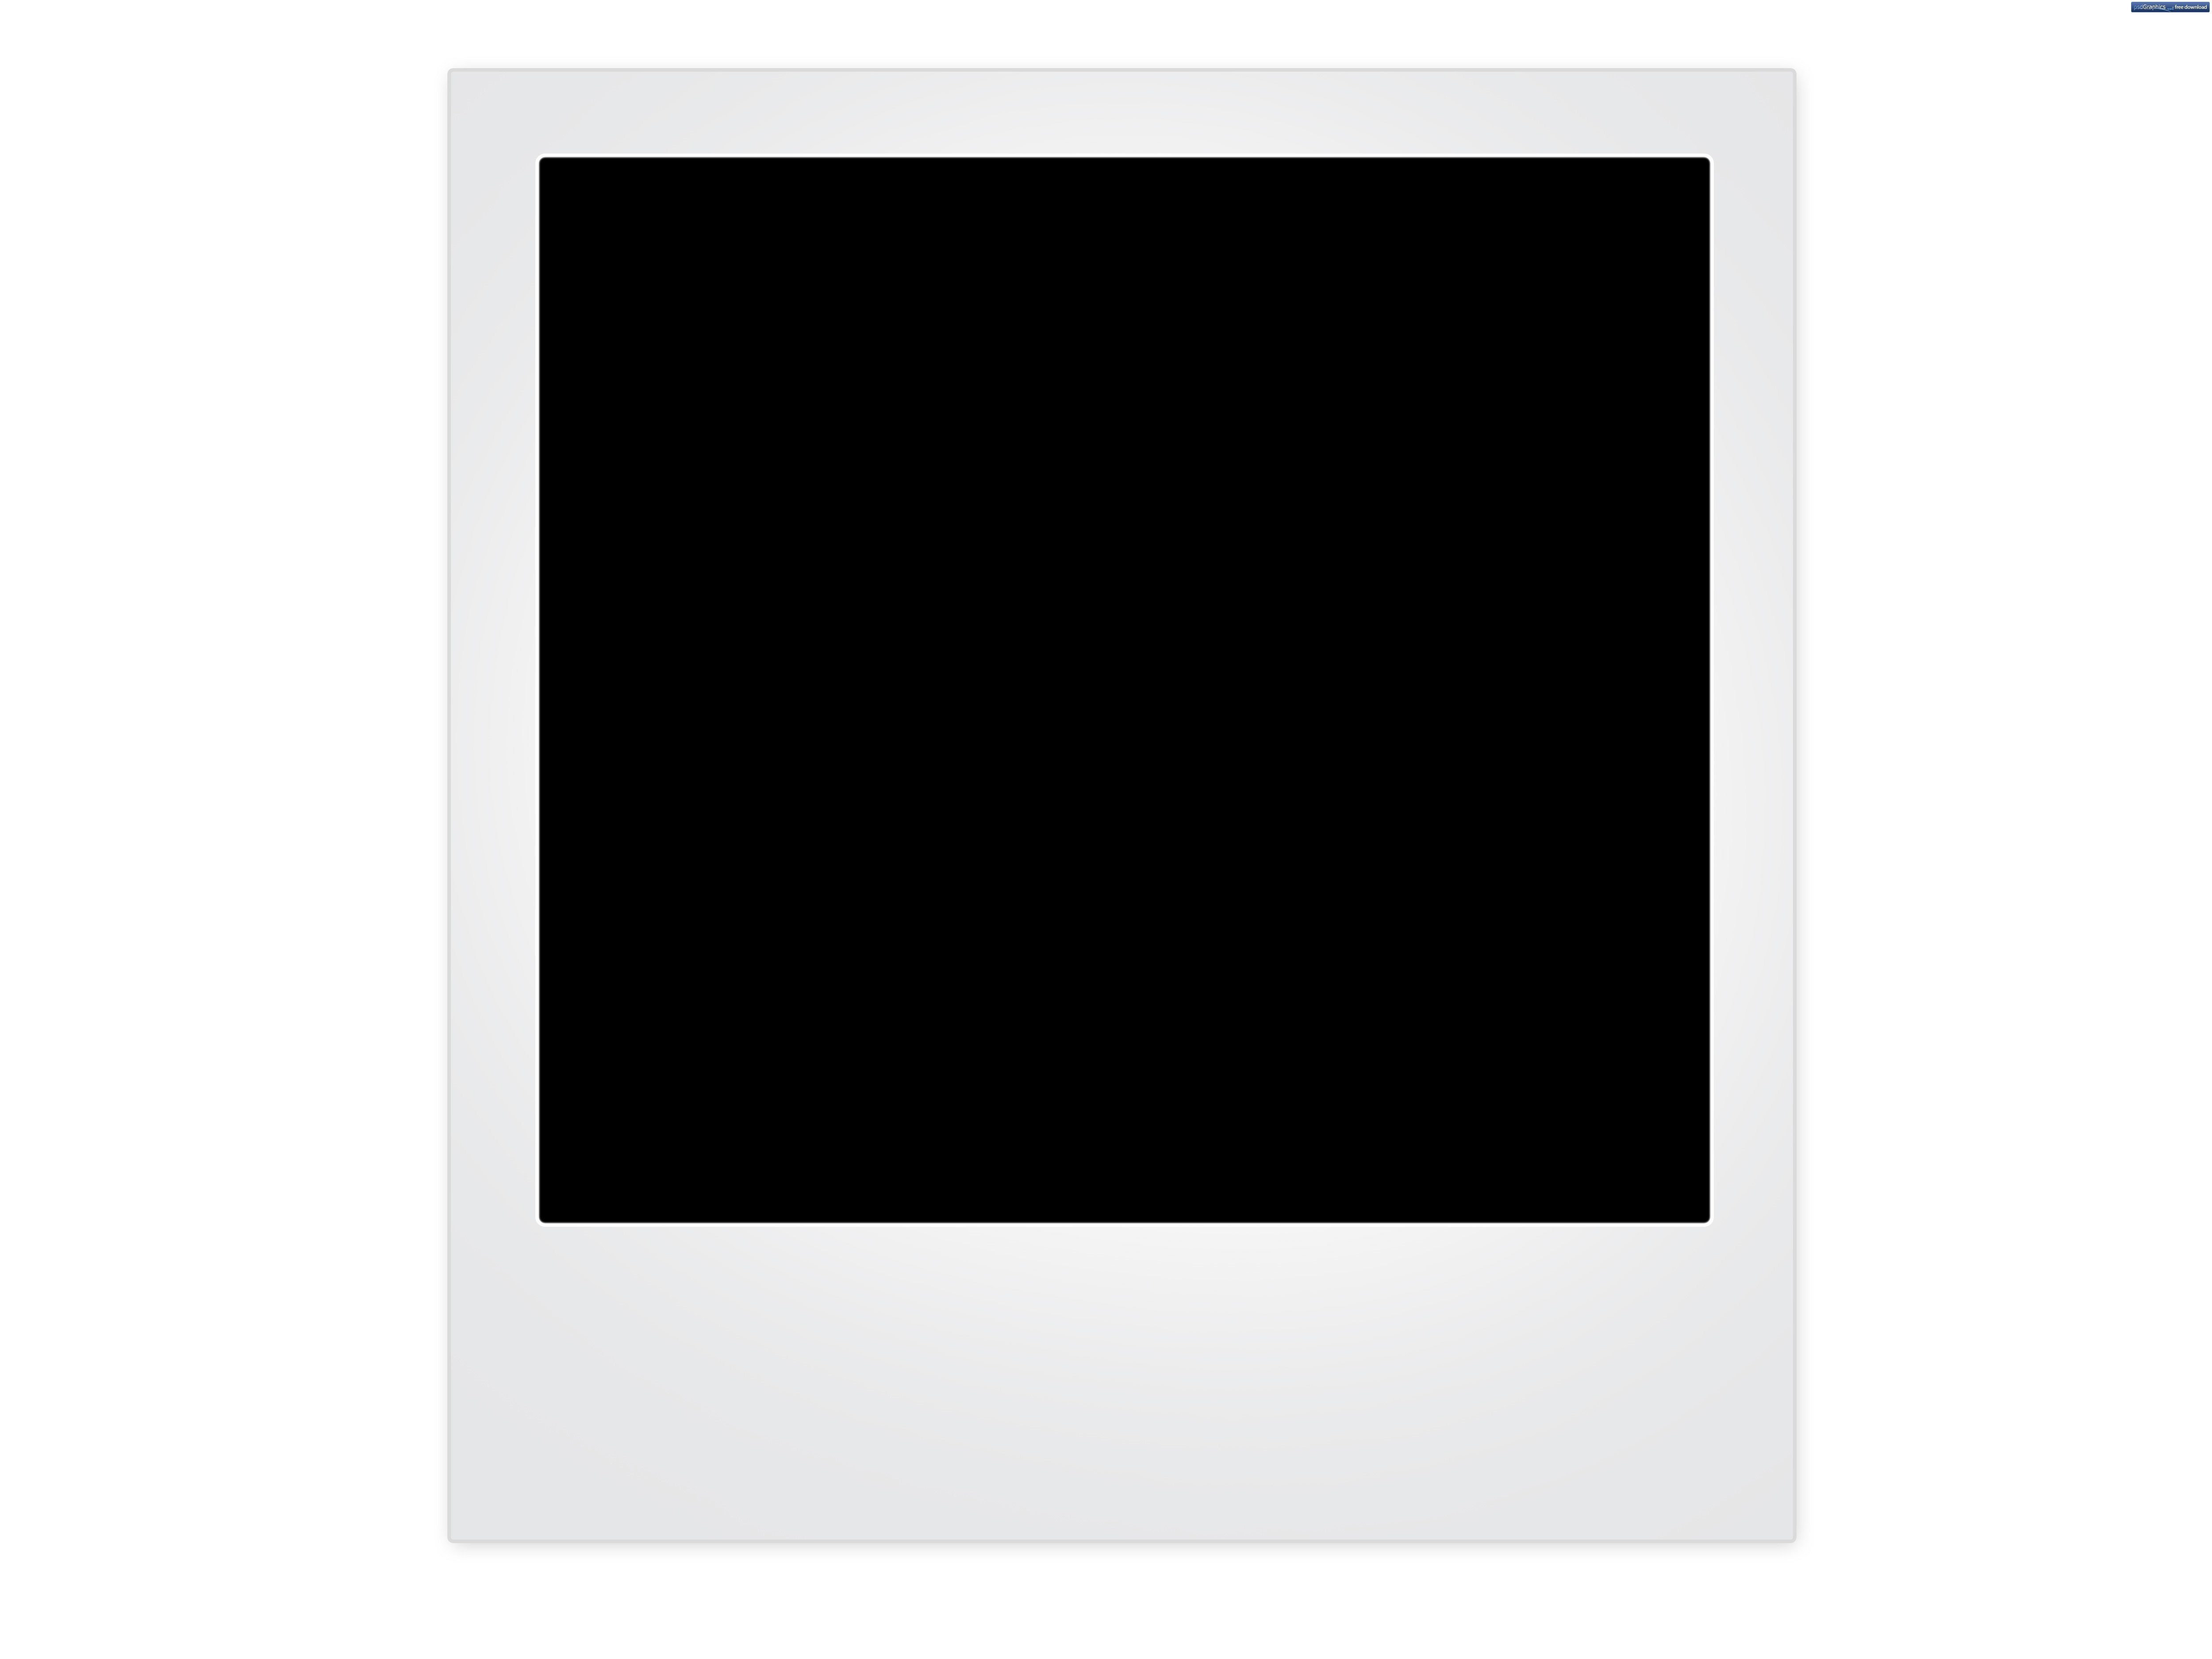 Polaroid png transparent background. Blank frame at template